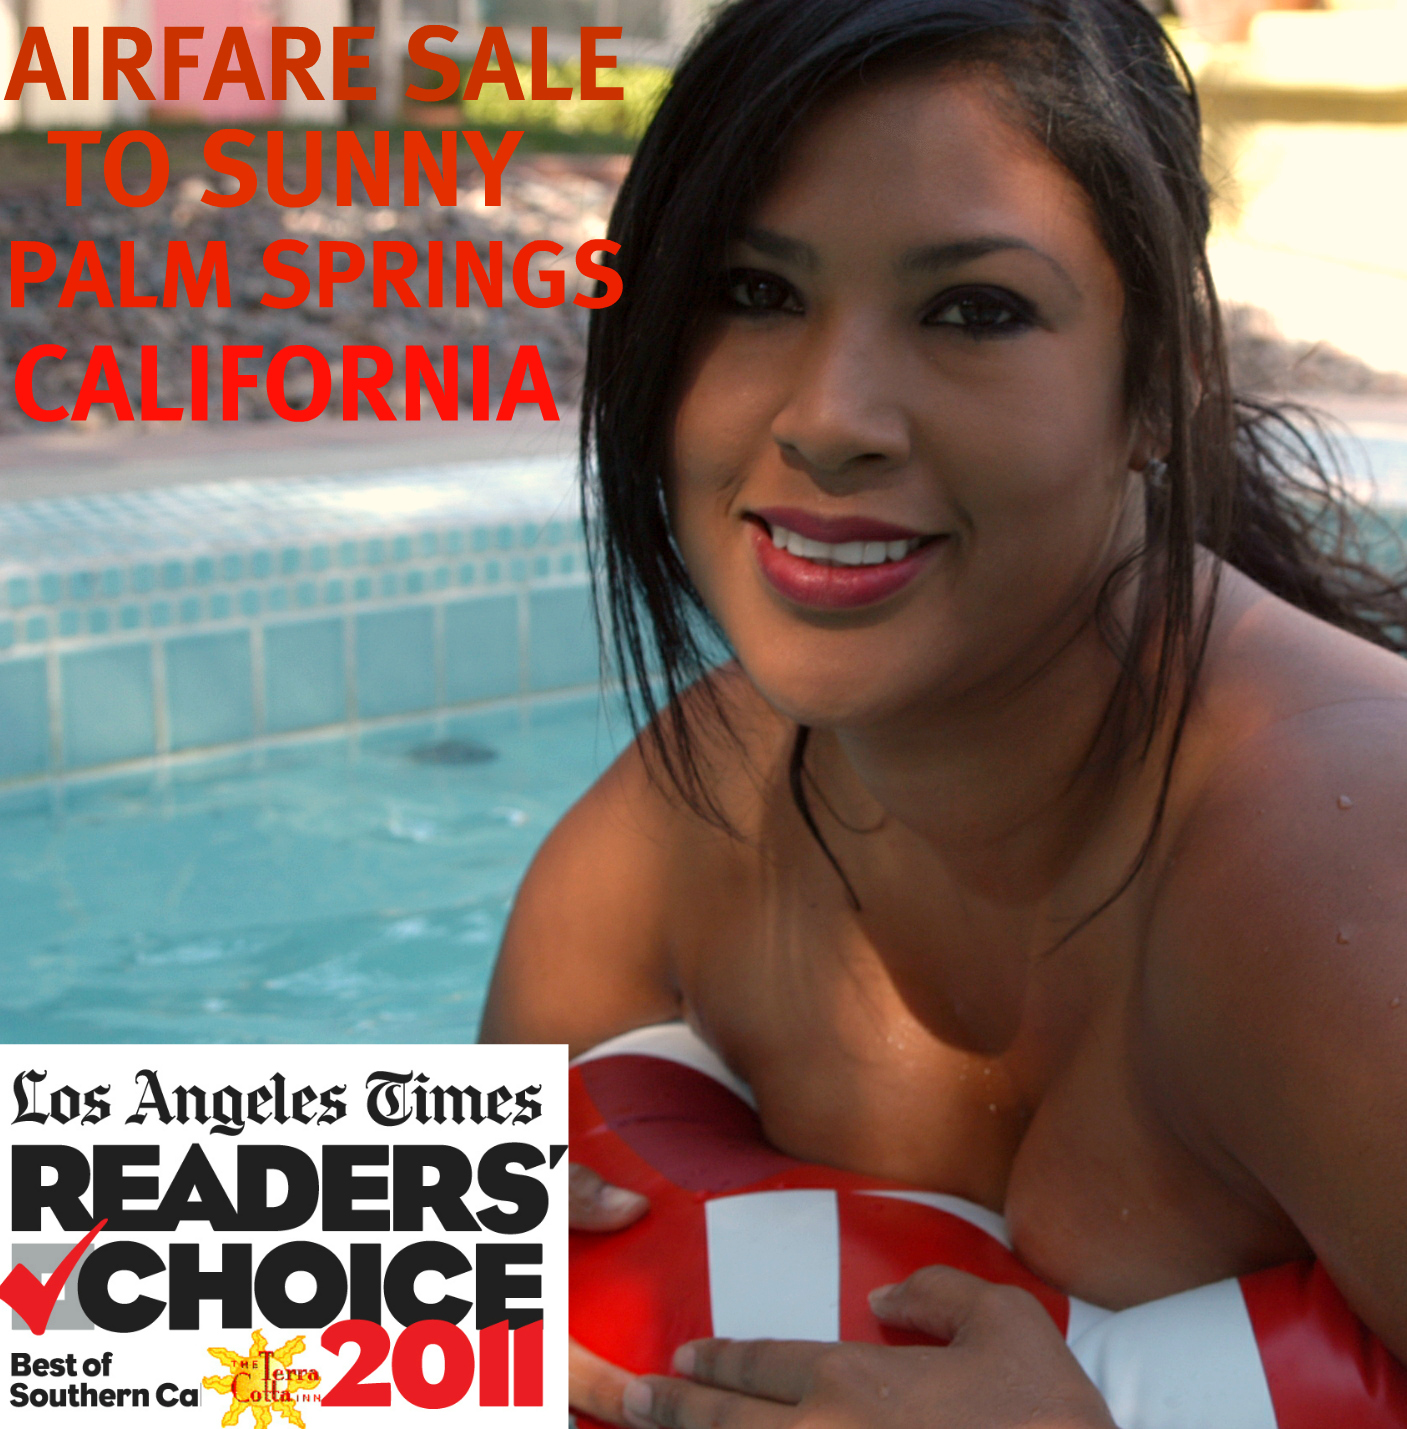 19 nudistfun.com  Spring into Savings with an American Airlines airfare sale to Terra Cotta Inn, Palm Springs, California